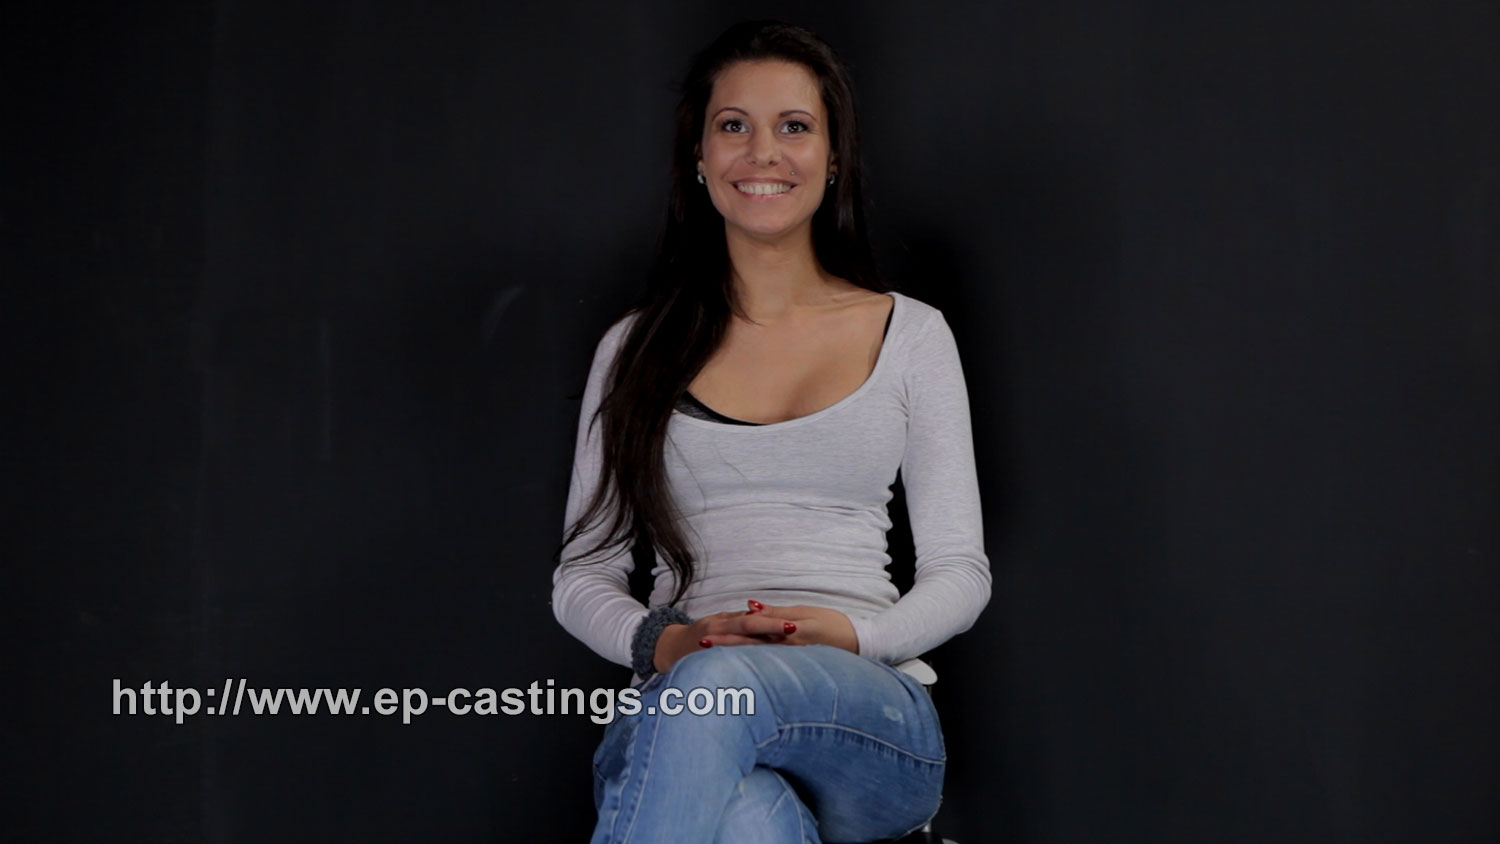 EP Castings - Angie, Lidia | Dr. Lomp